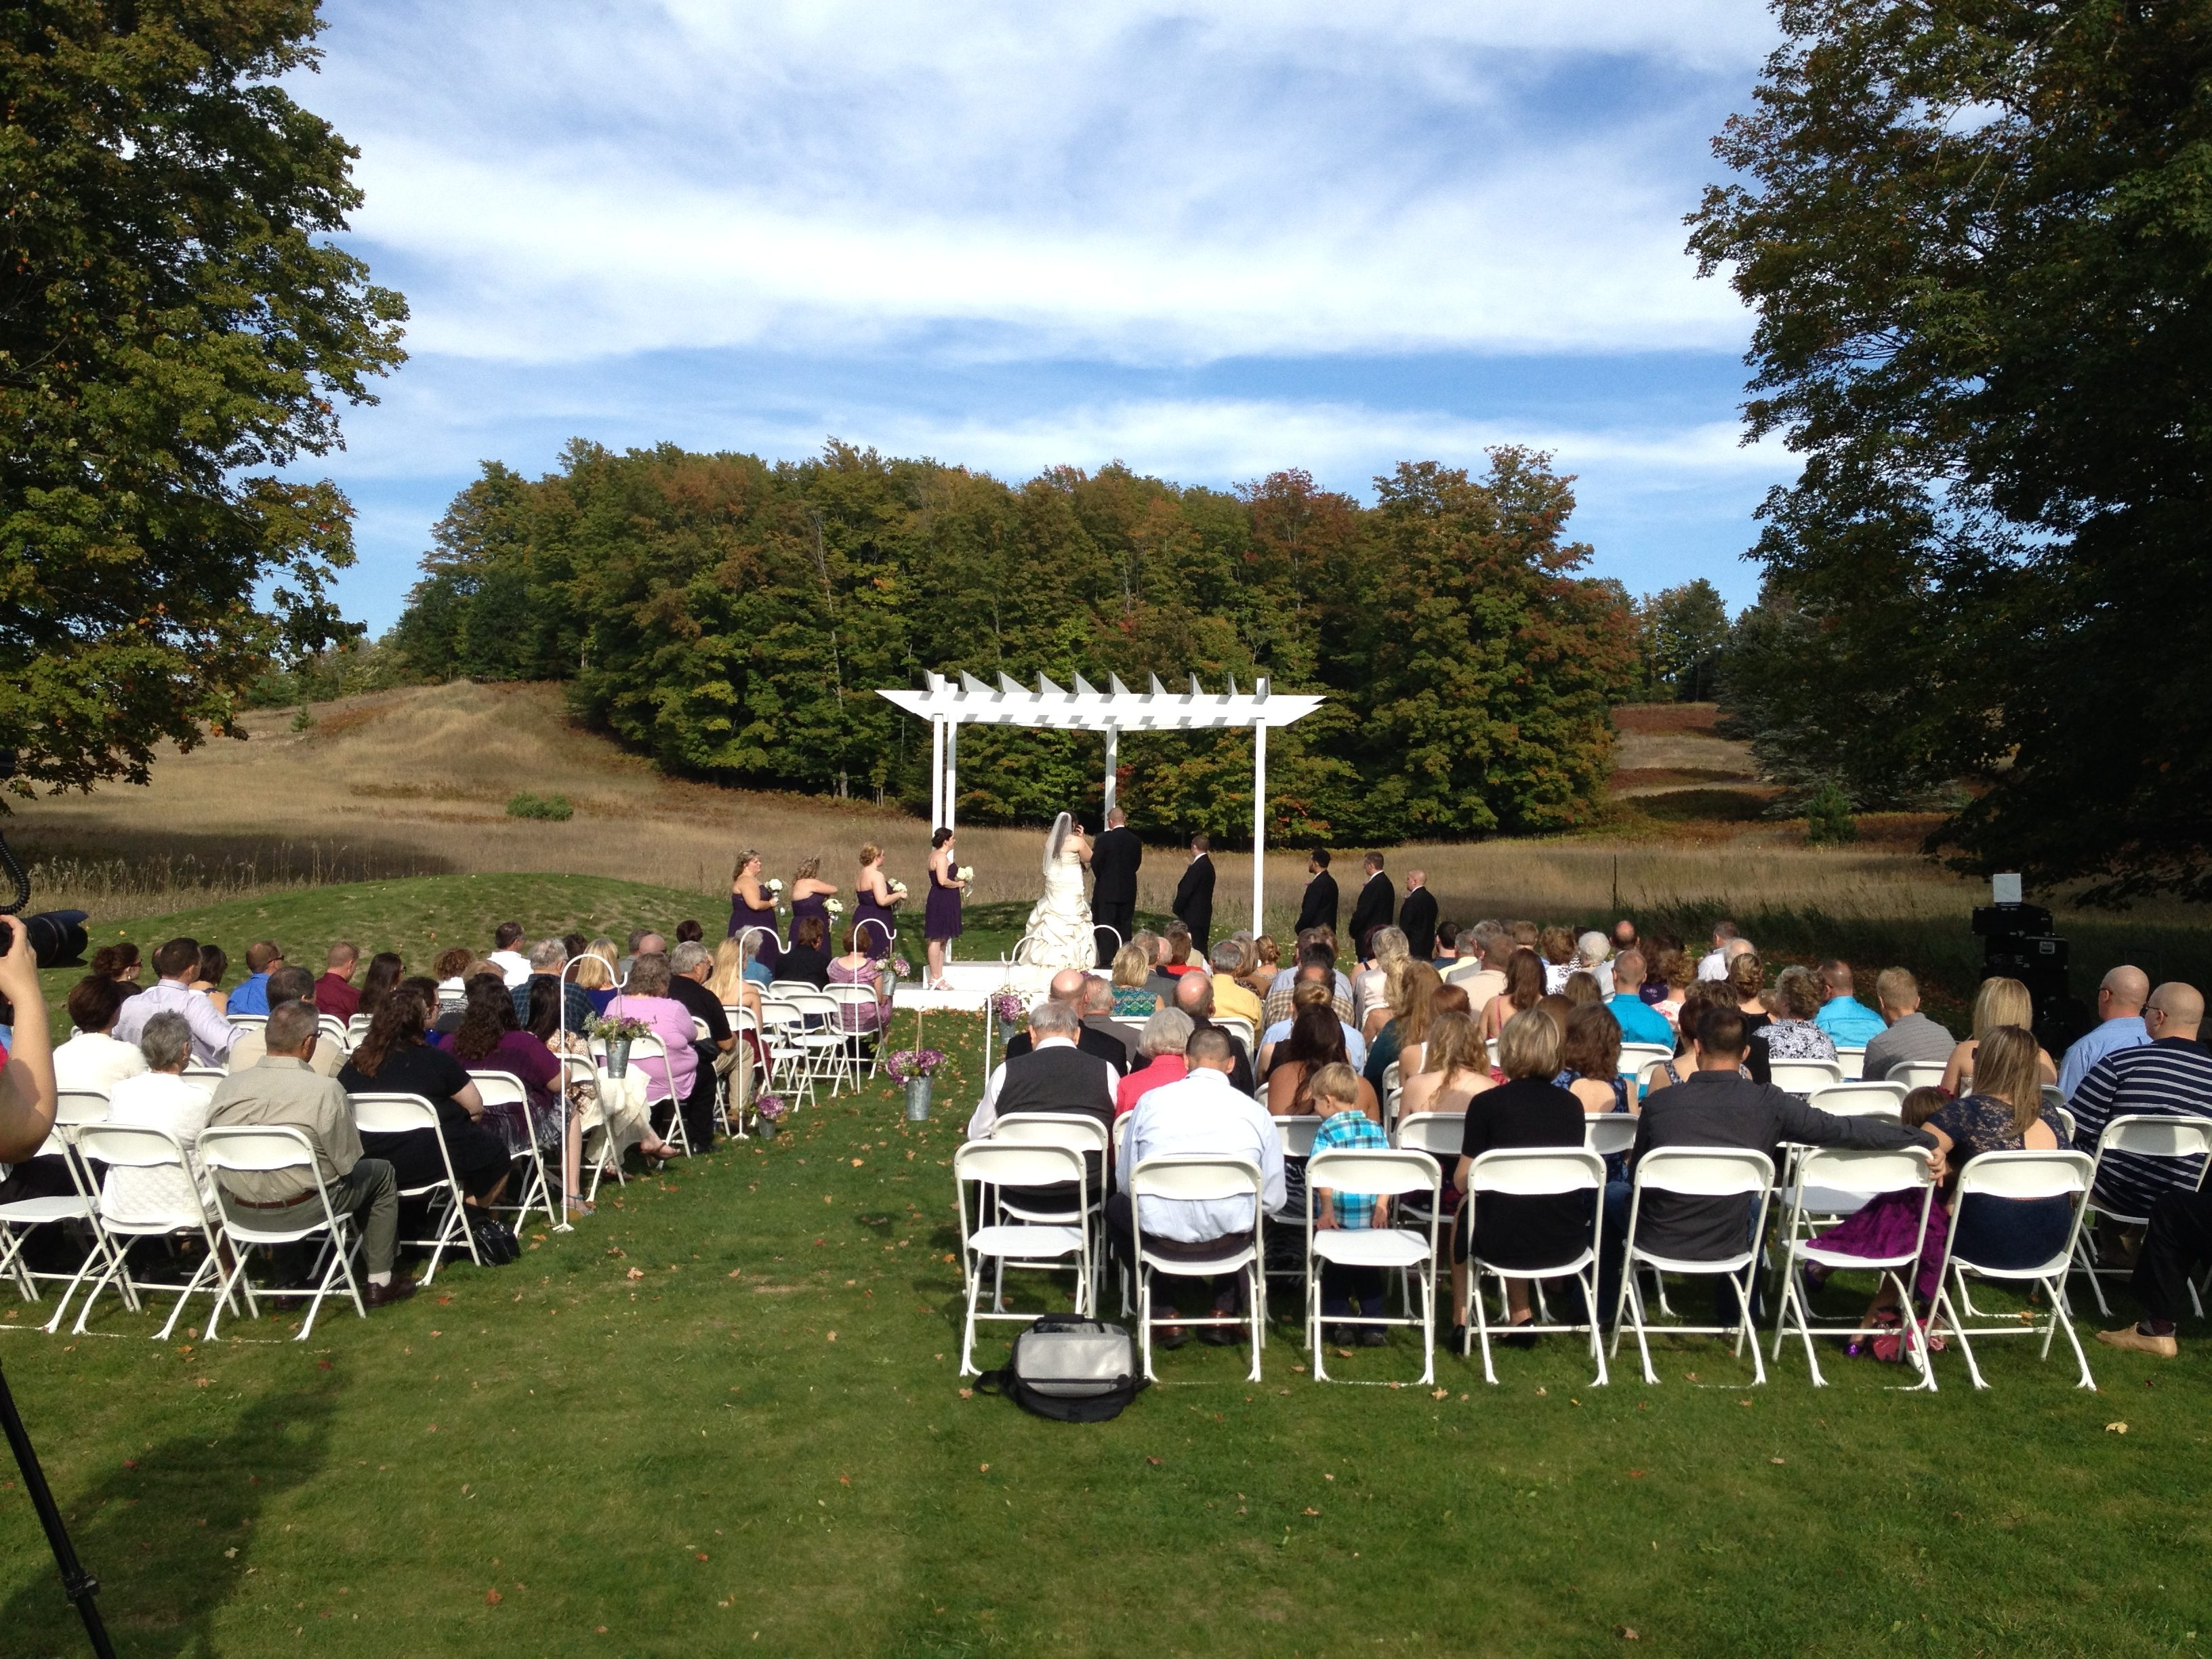 We also provide Ceremony Music/PA System